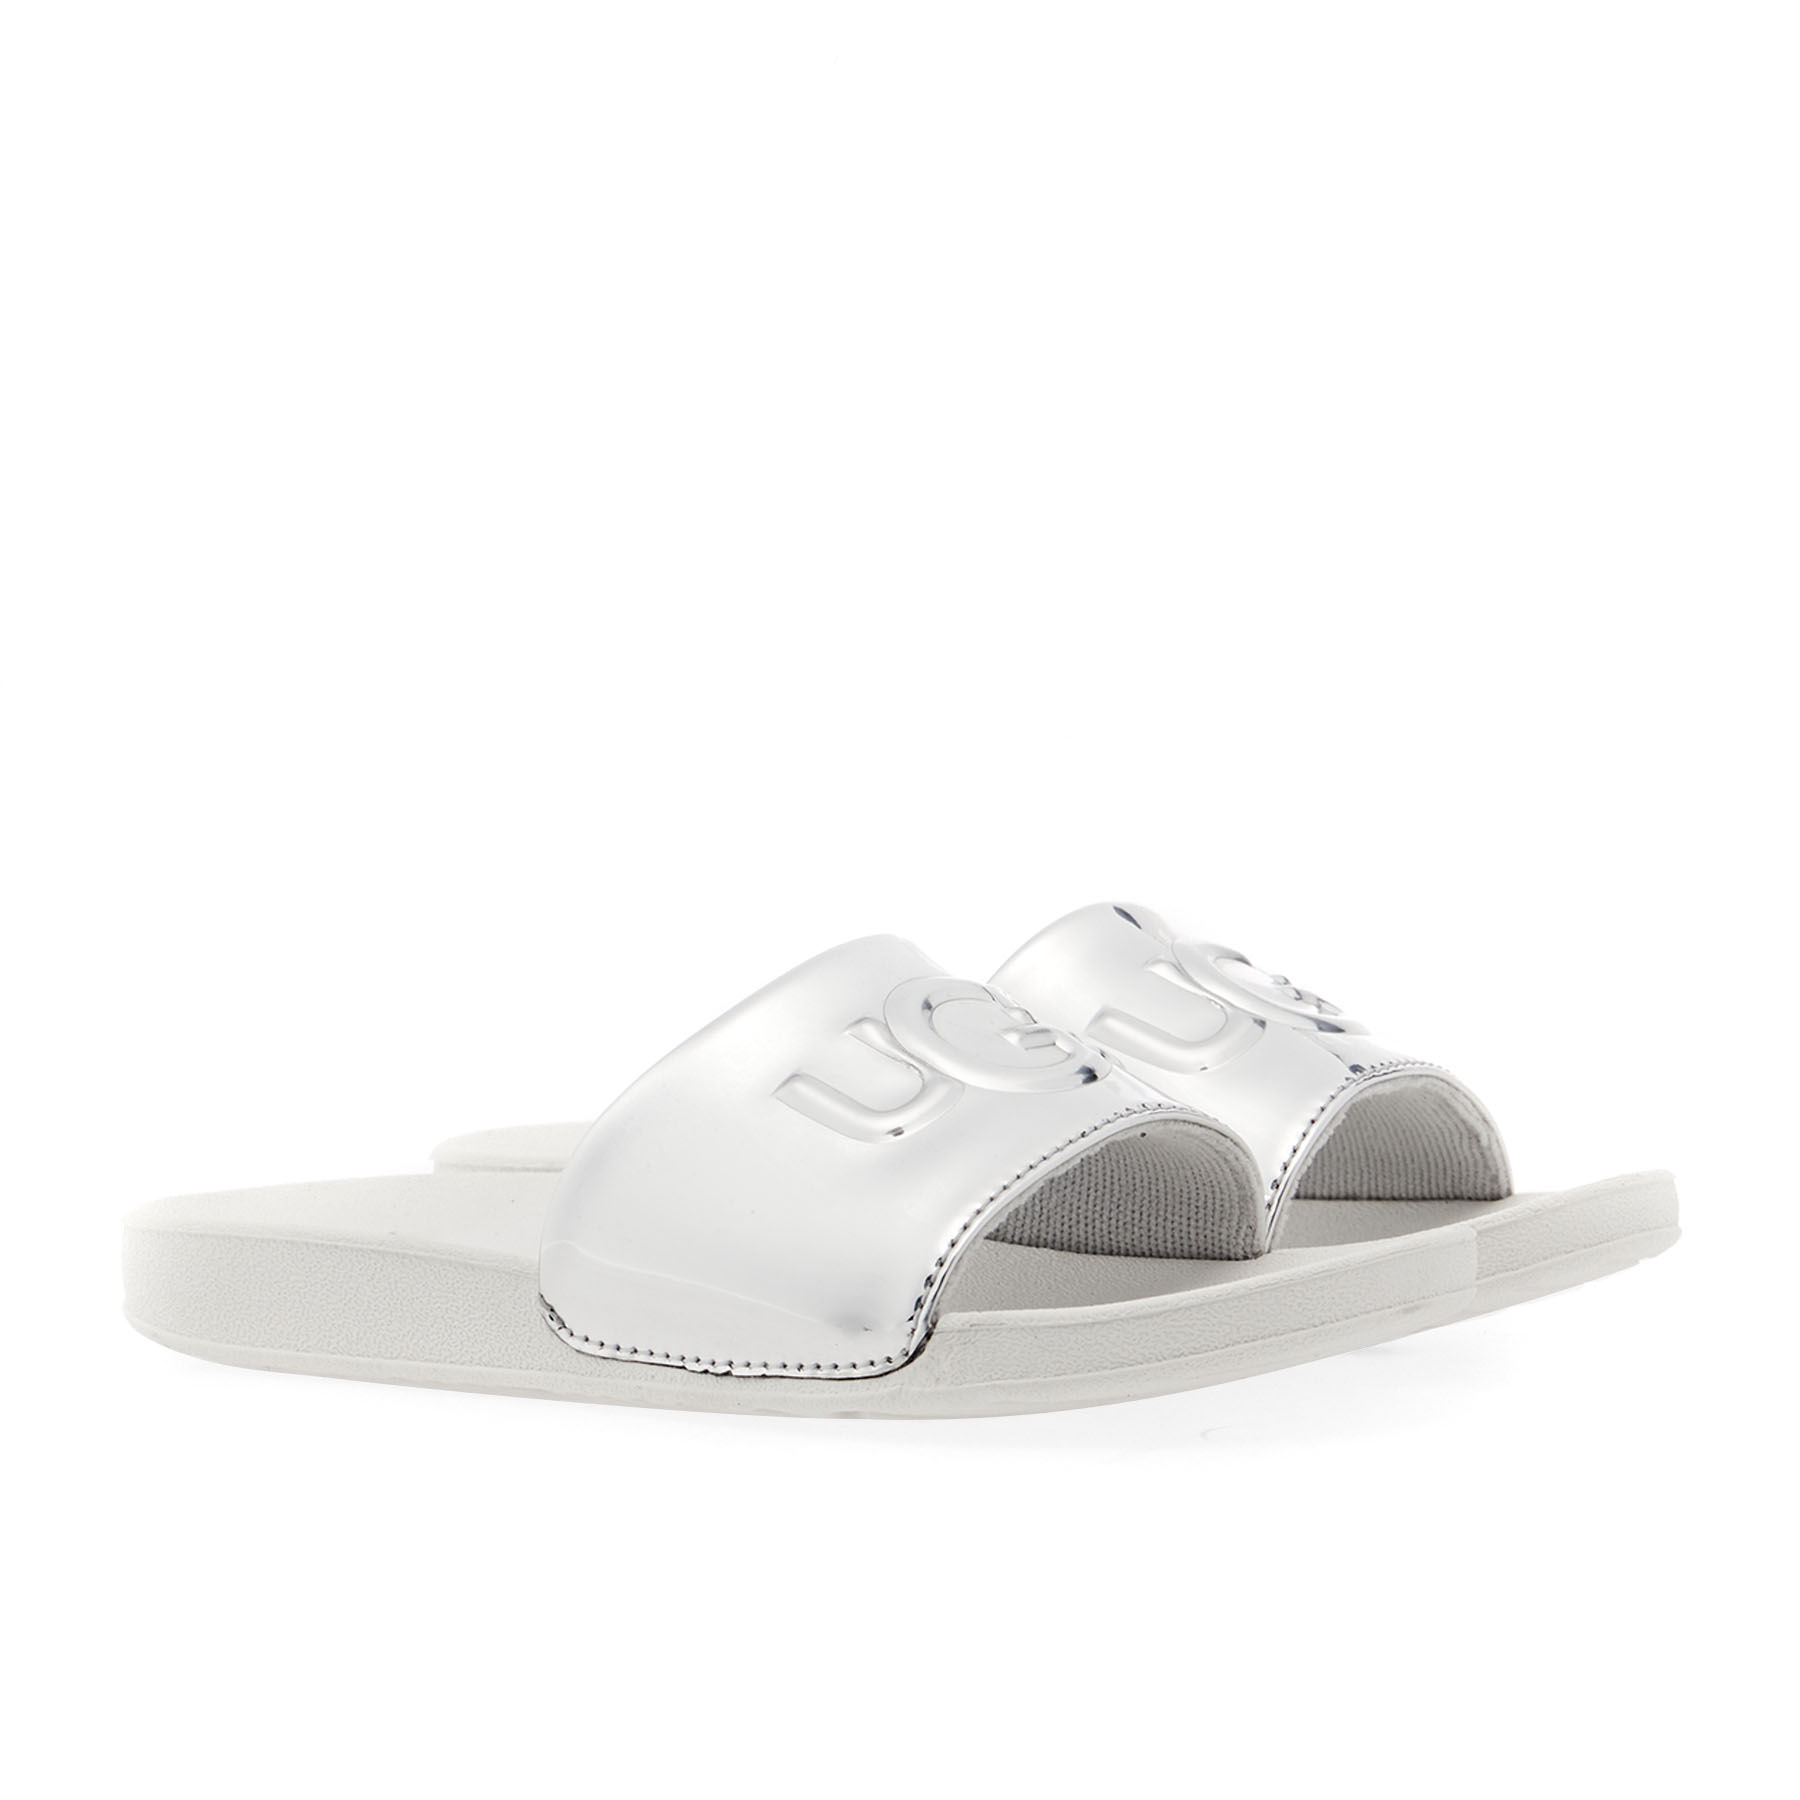 UGG Graphic Sliders - Free Delivery